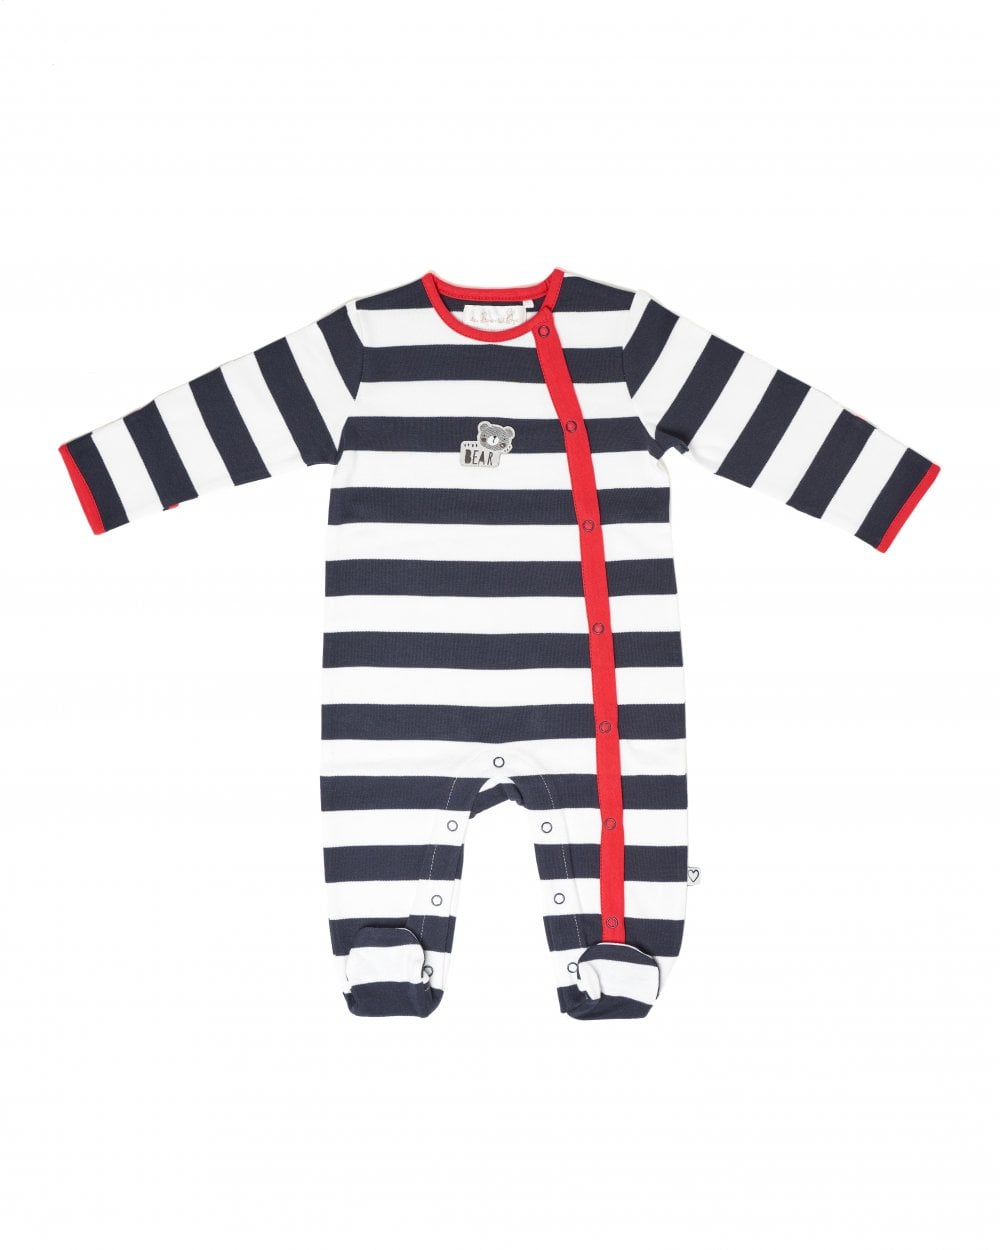 The Essential One Baby Boys Sleepsuit in Grey and Navy Stripe